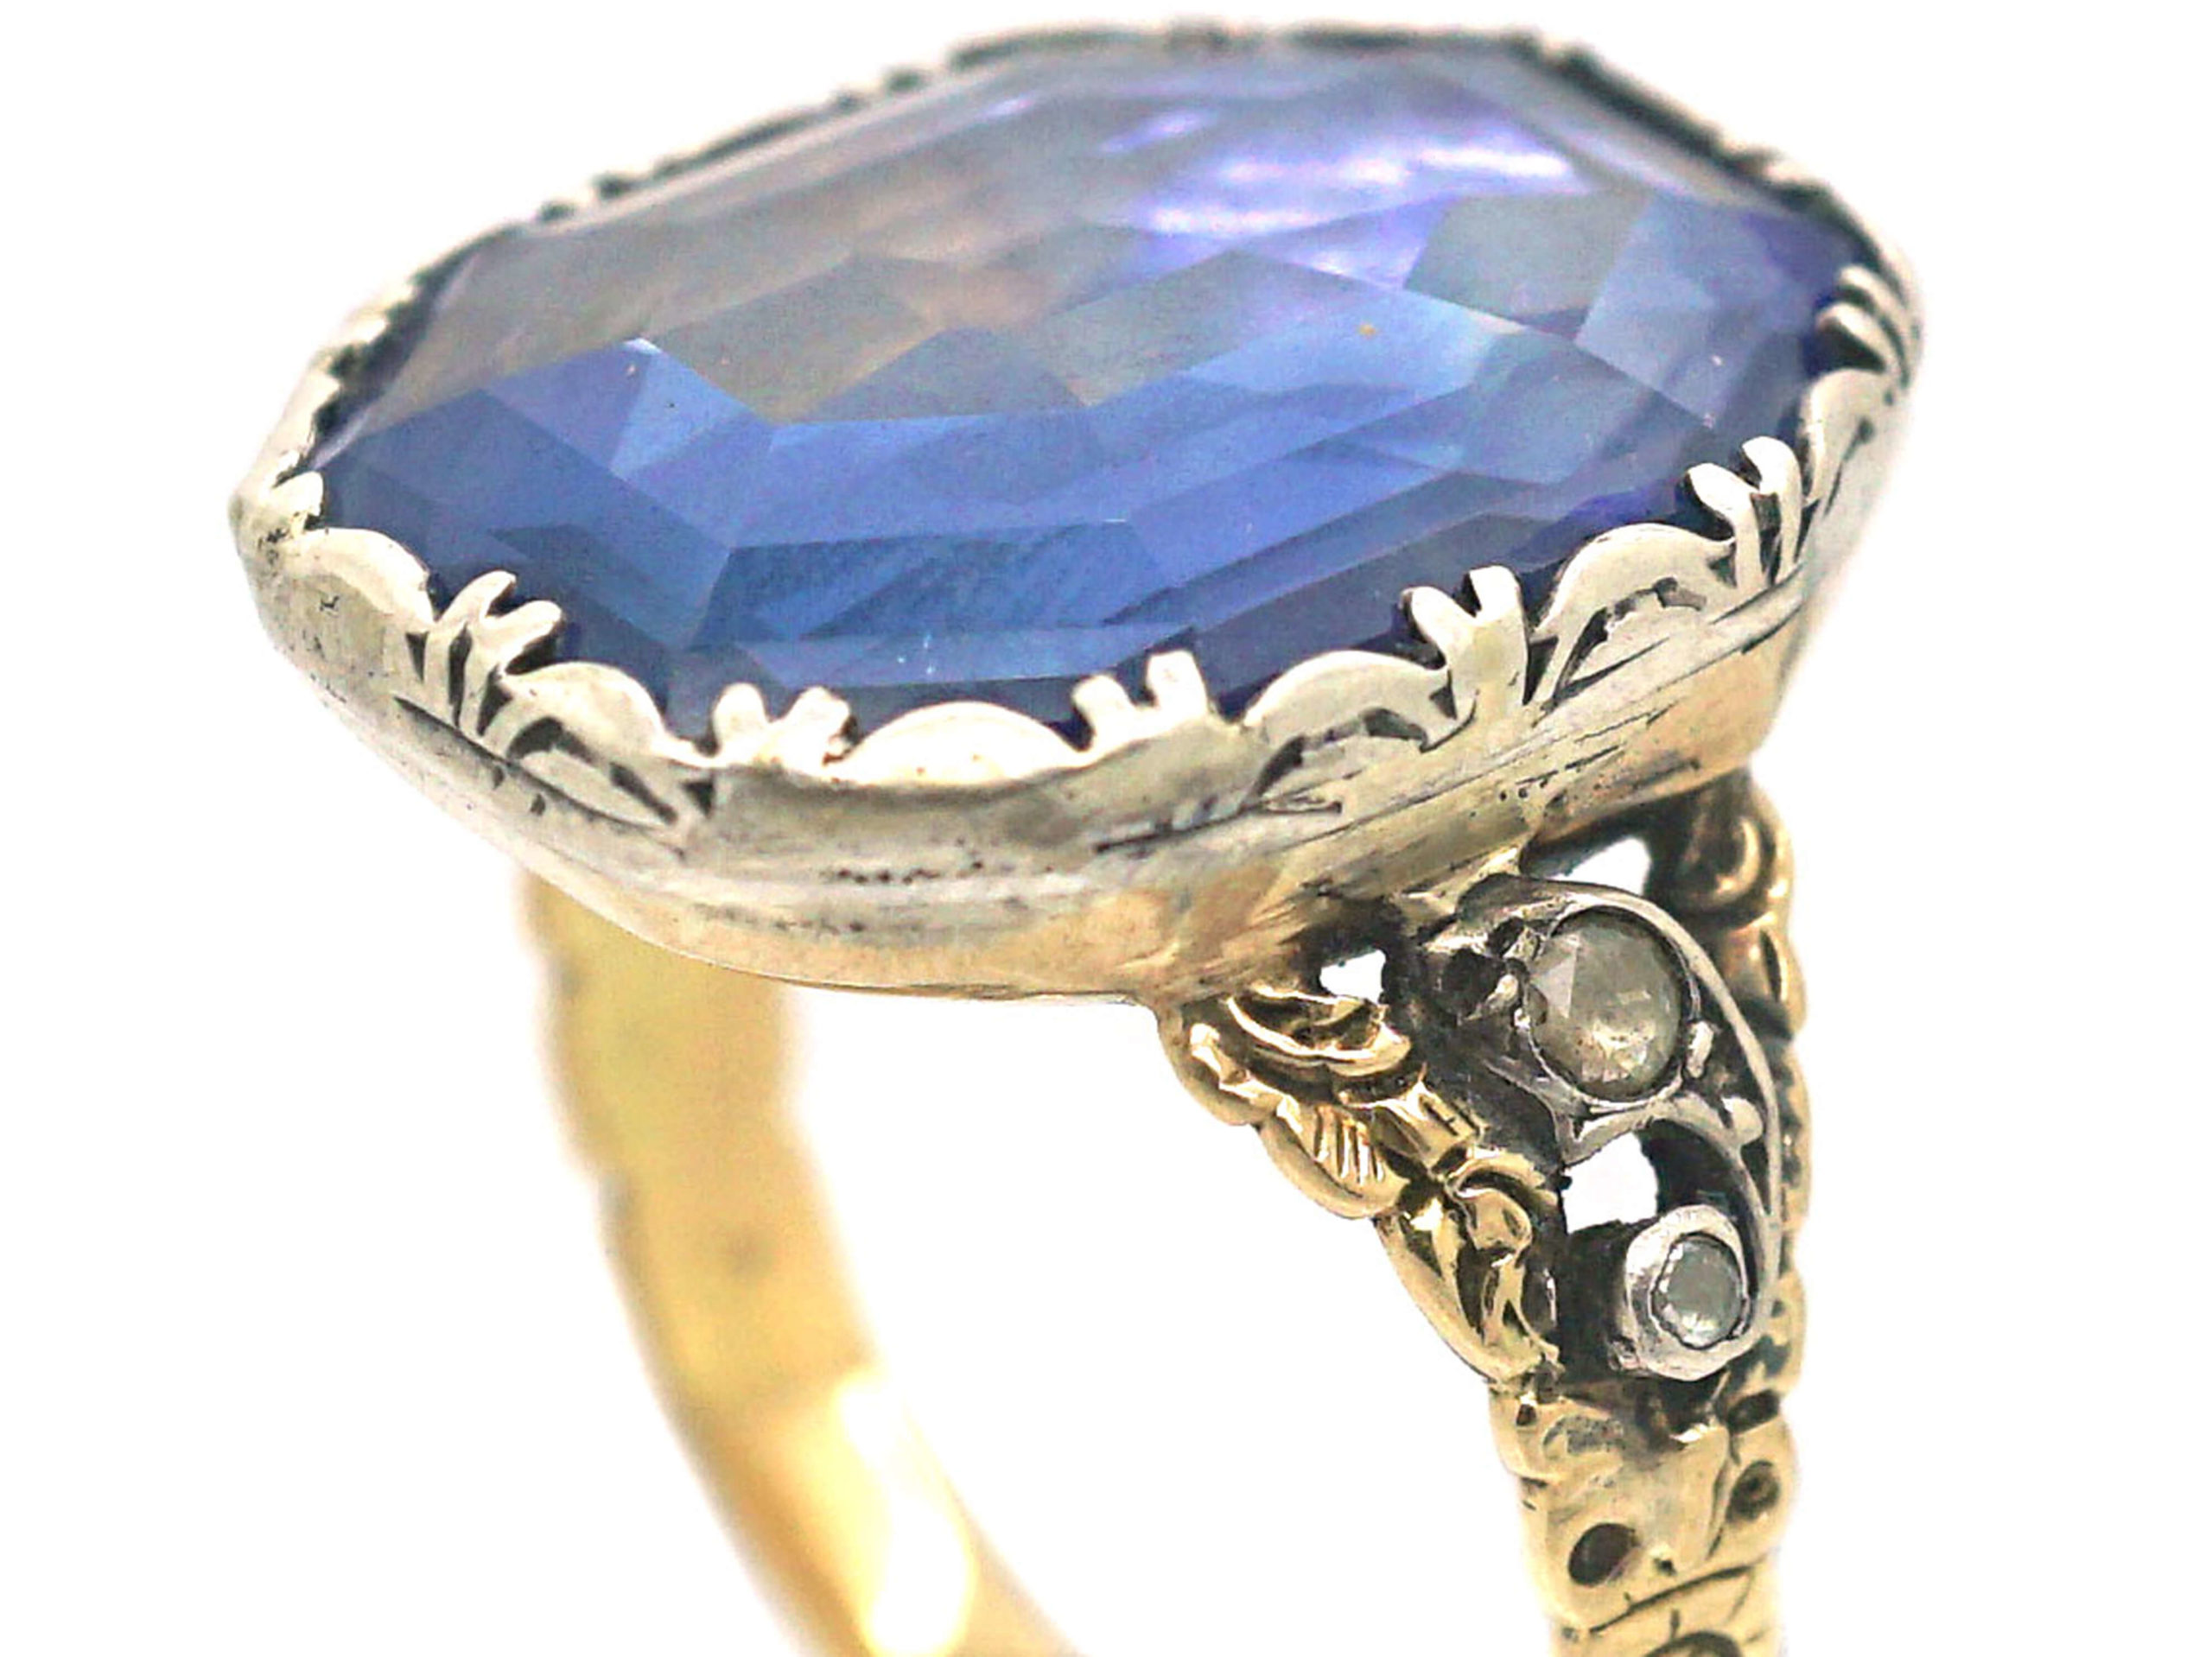 15ct Gold & Silver Georgian Ring set with a Large Sapphire